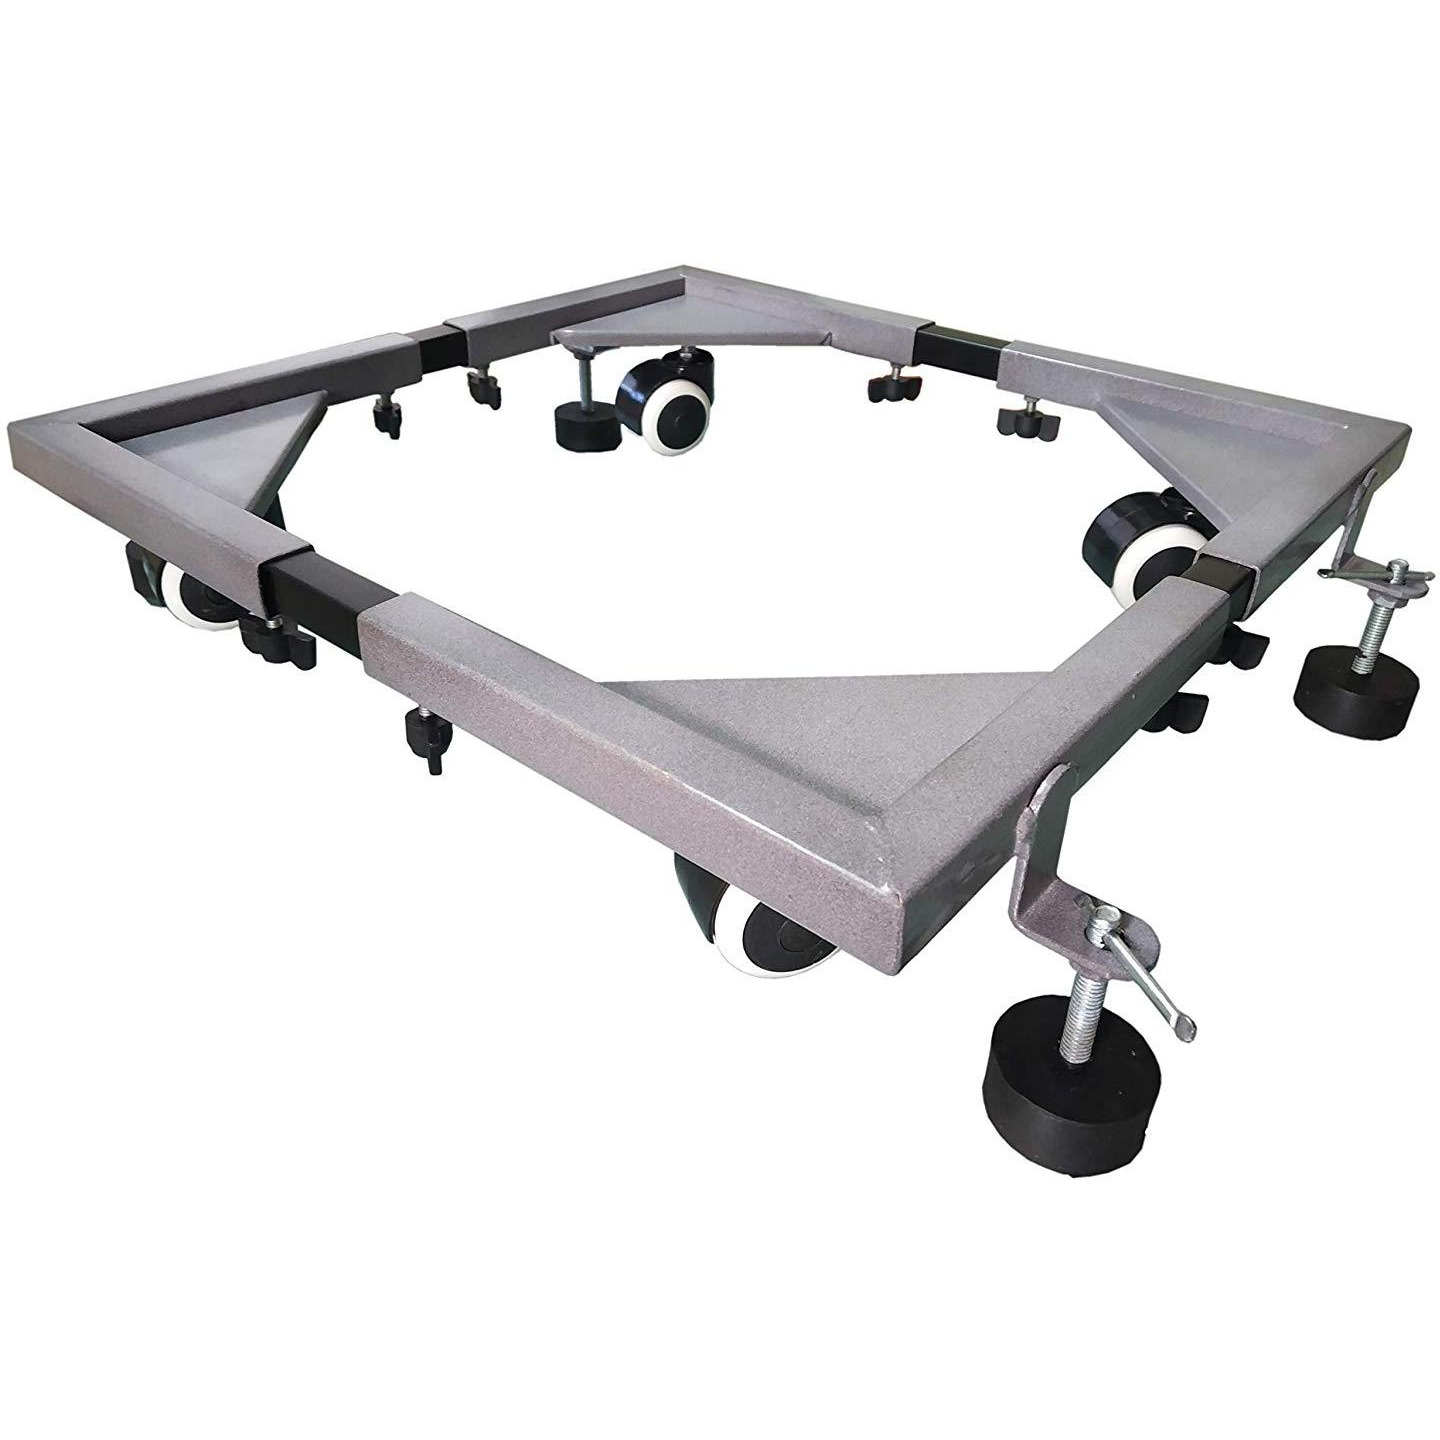 BTH Company Heavy Duty Universal Adjustable Base Moveable (Grey)